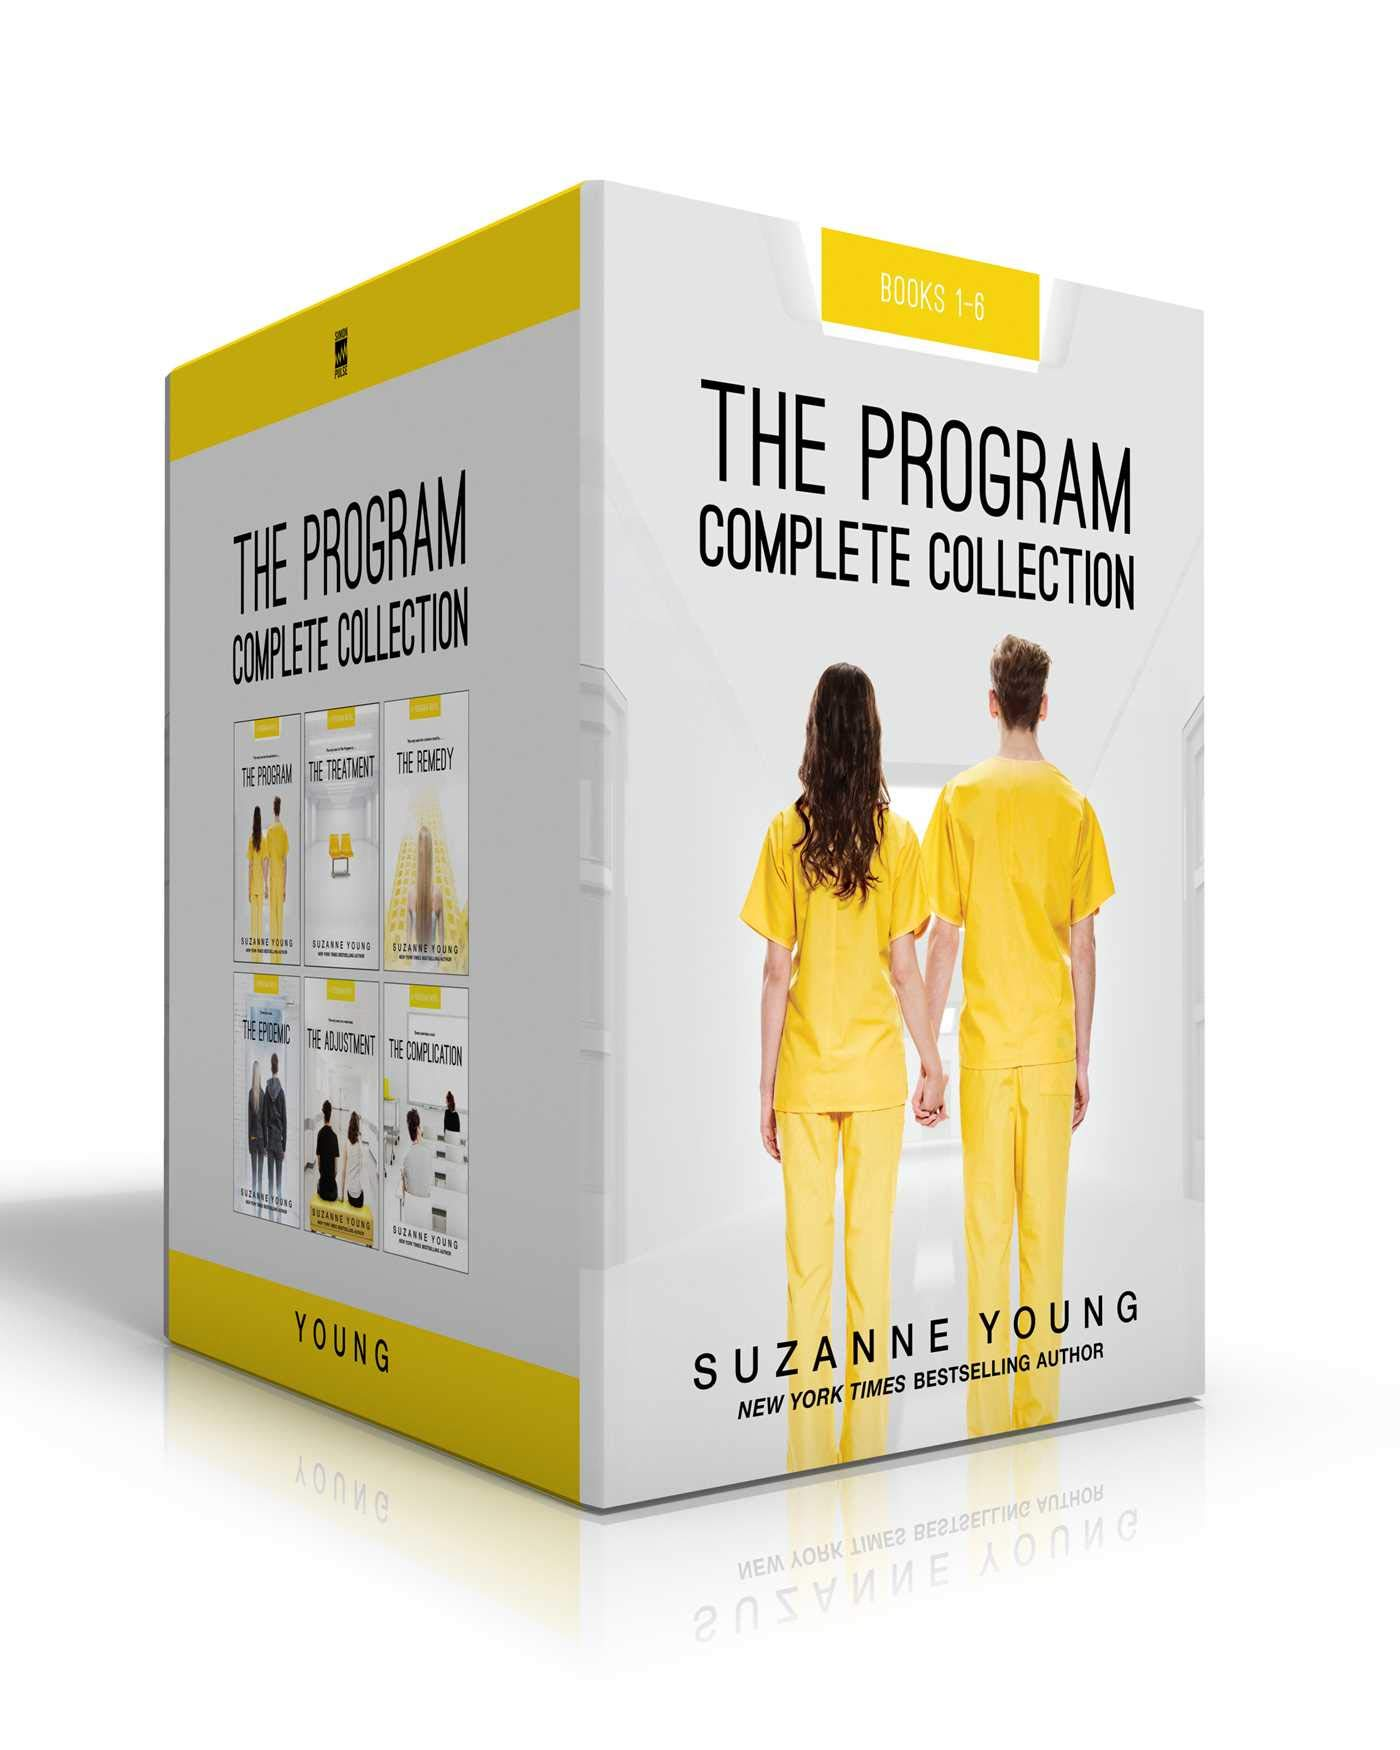 The Program Complete Collection: The Program; The Treatment; The Remedy; The Epidemic; The Adjustment; The Complication by Simon Pulse